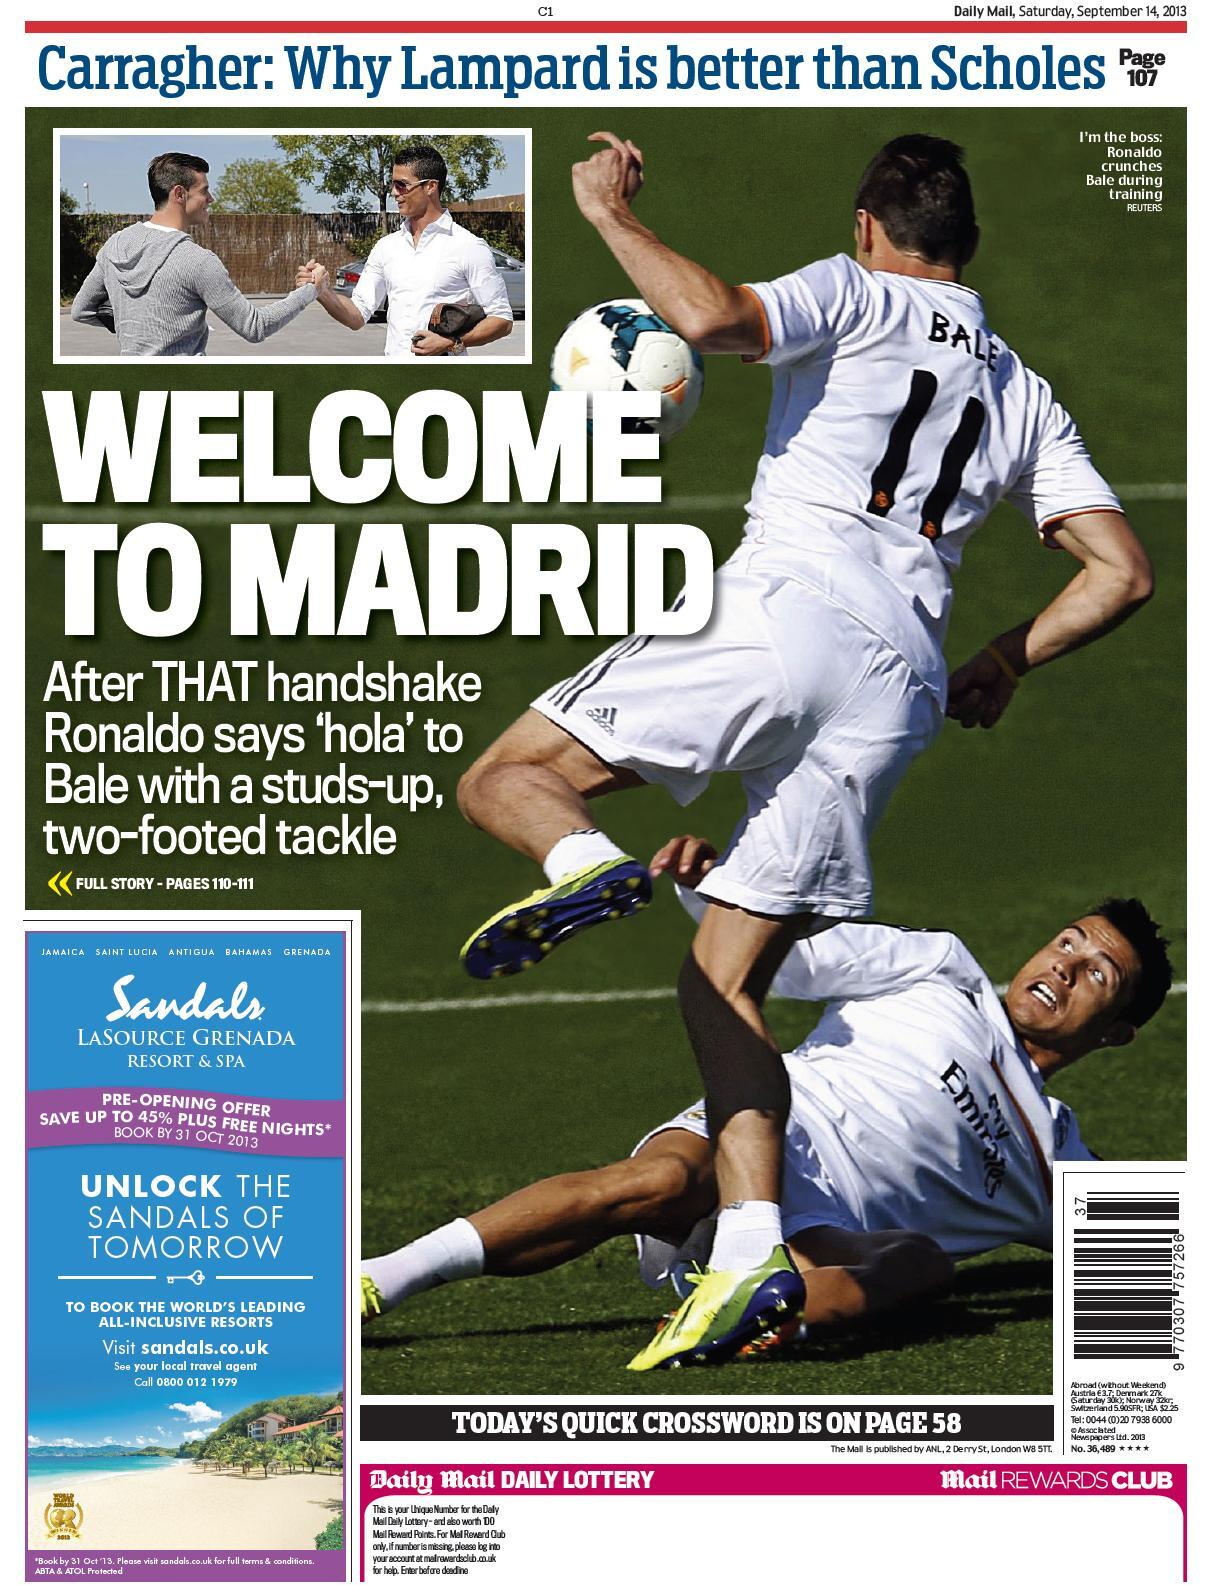 Saturday papers completely misinterpret Ronaldo/Bale Moment: think Cristiano won, missed key nutmegs